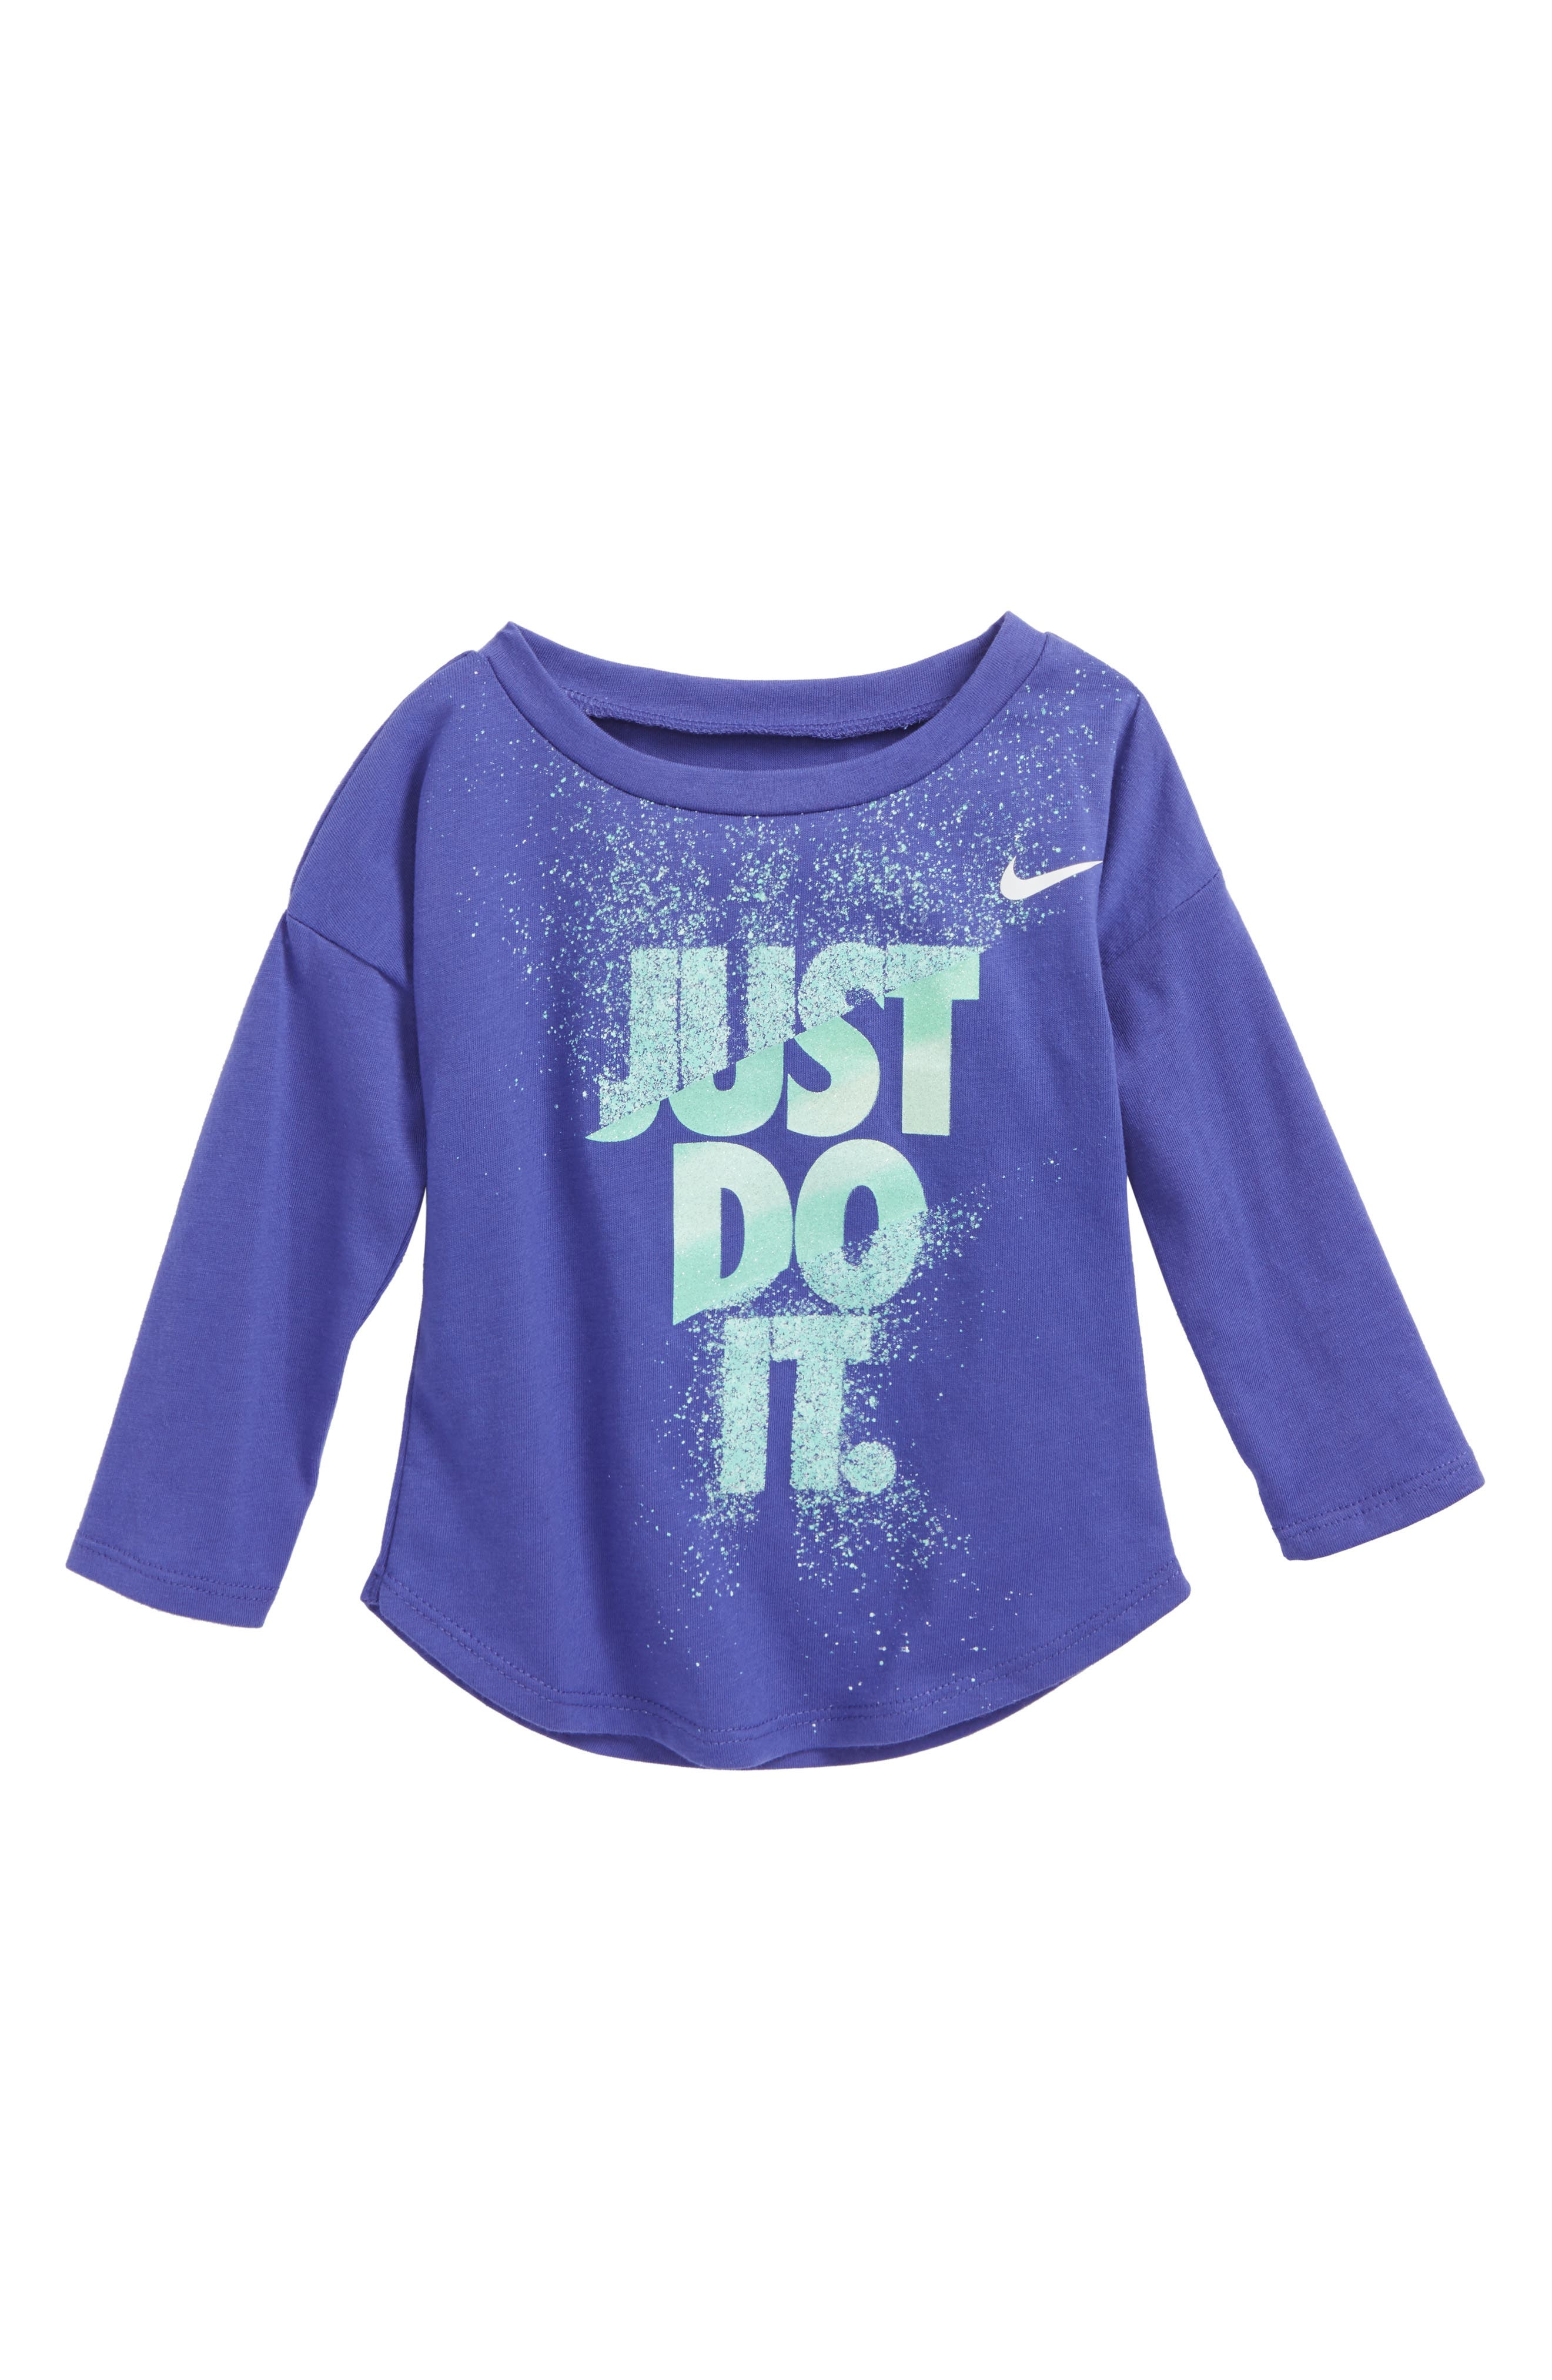 Nike Just Do It Splice Graphic Tee (Baby Girls)